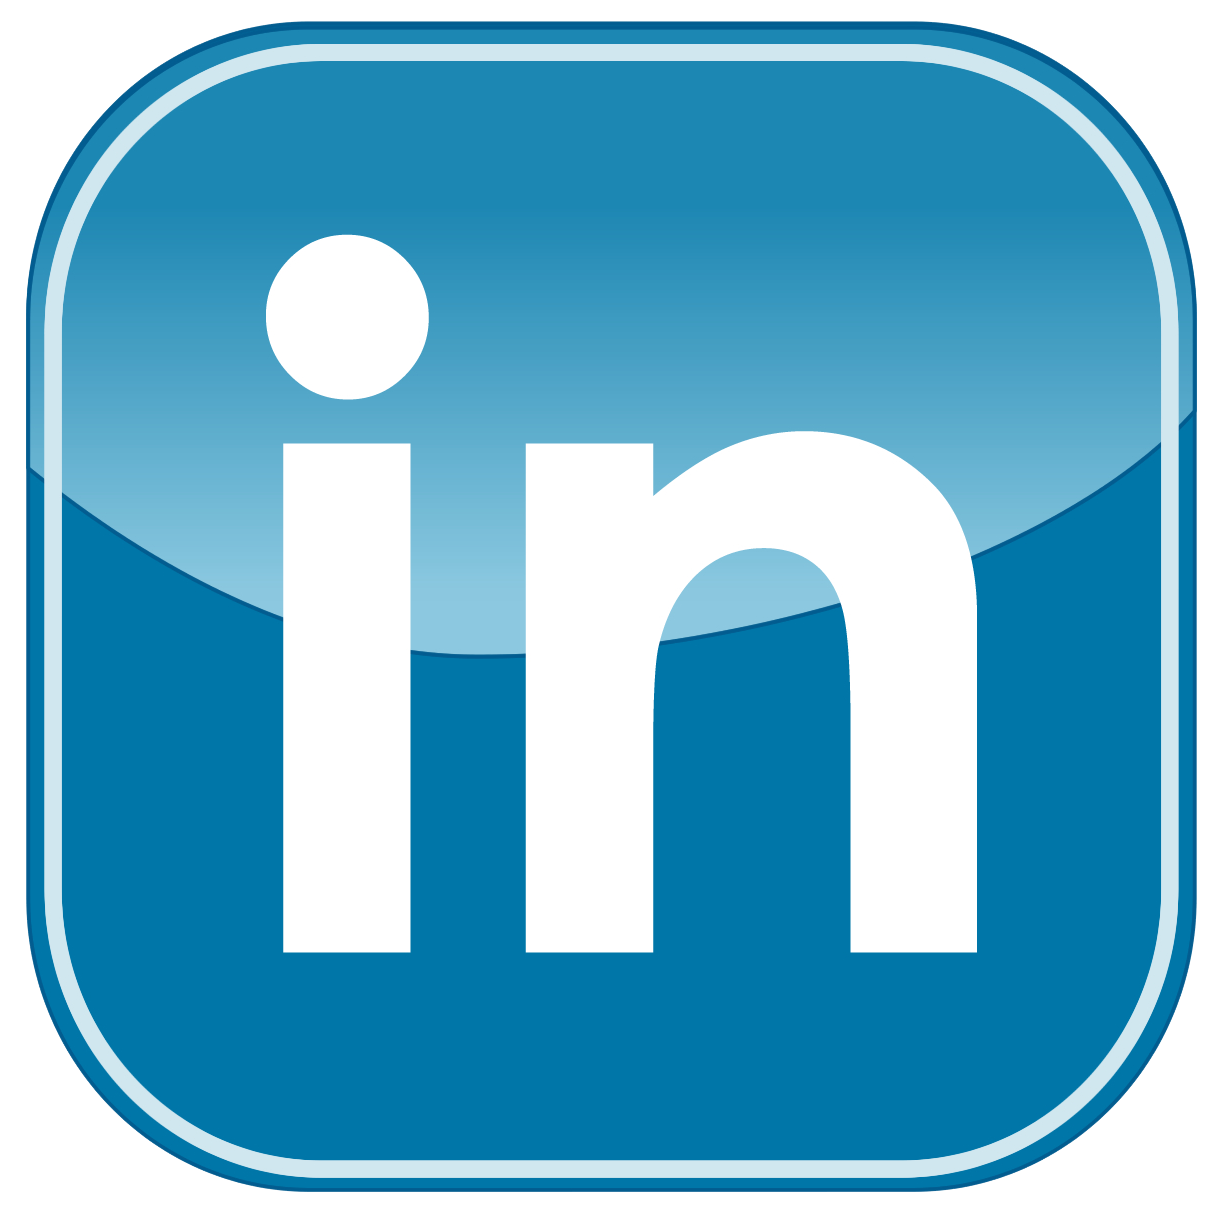 Linkedin Logo Hd Png 1828 Free Transparent Png Logos